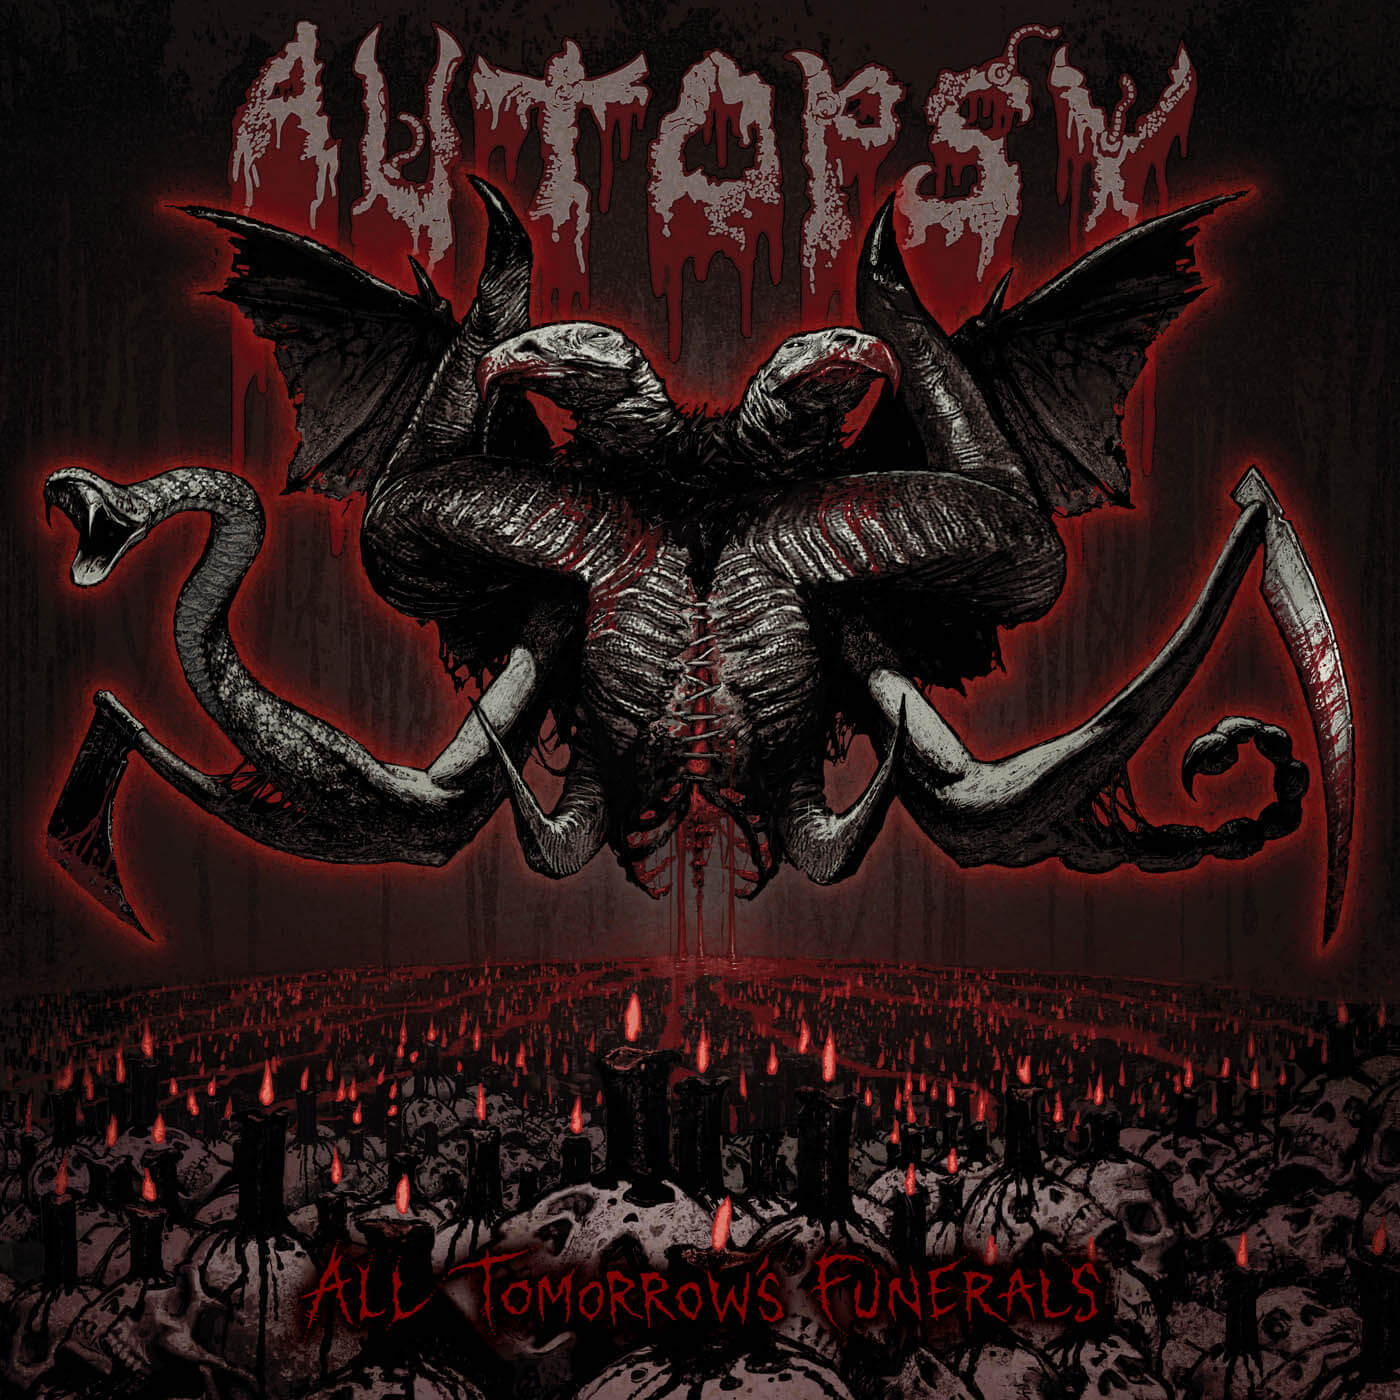 Autopsy - All Tomorrow's Funerals (Digibook)